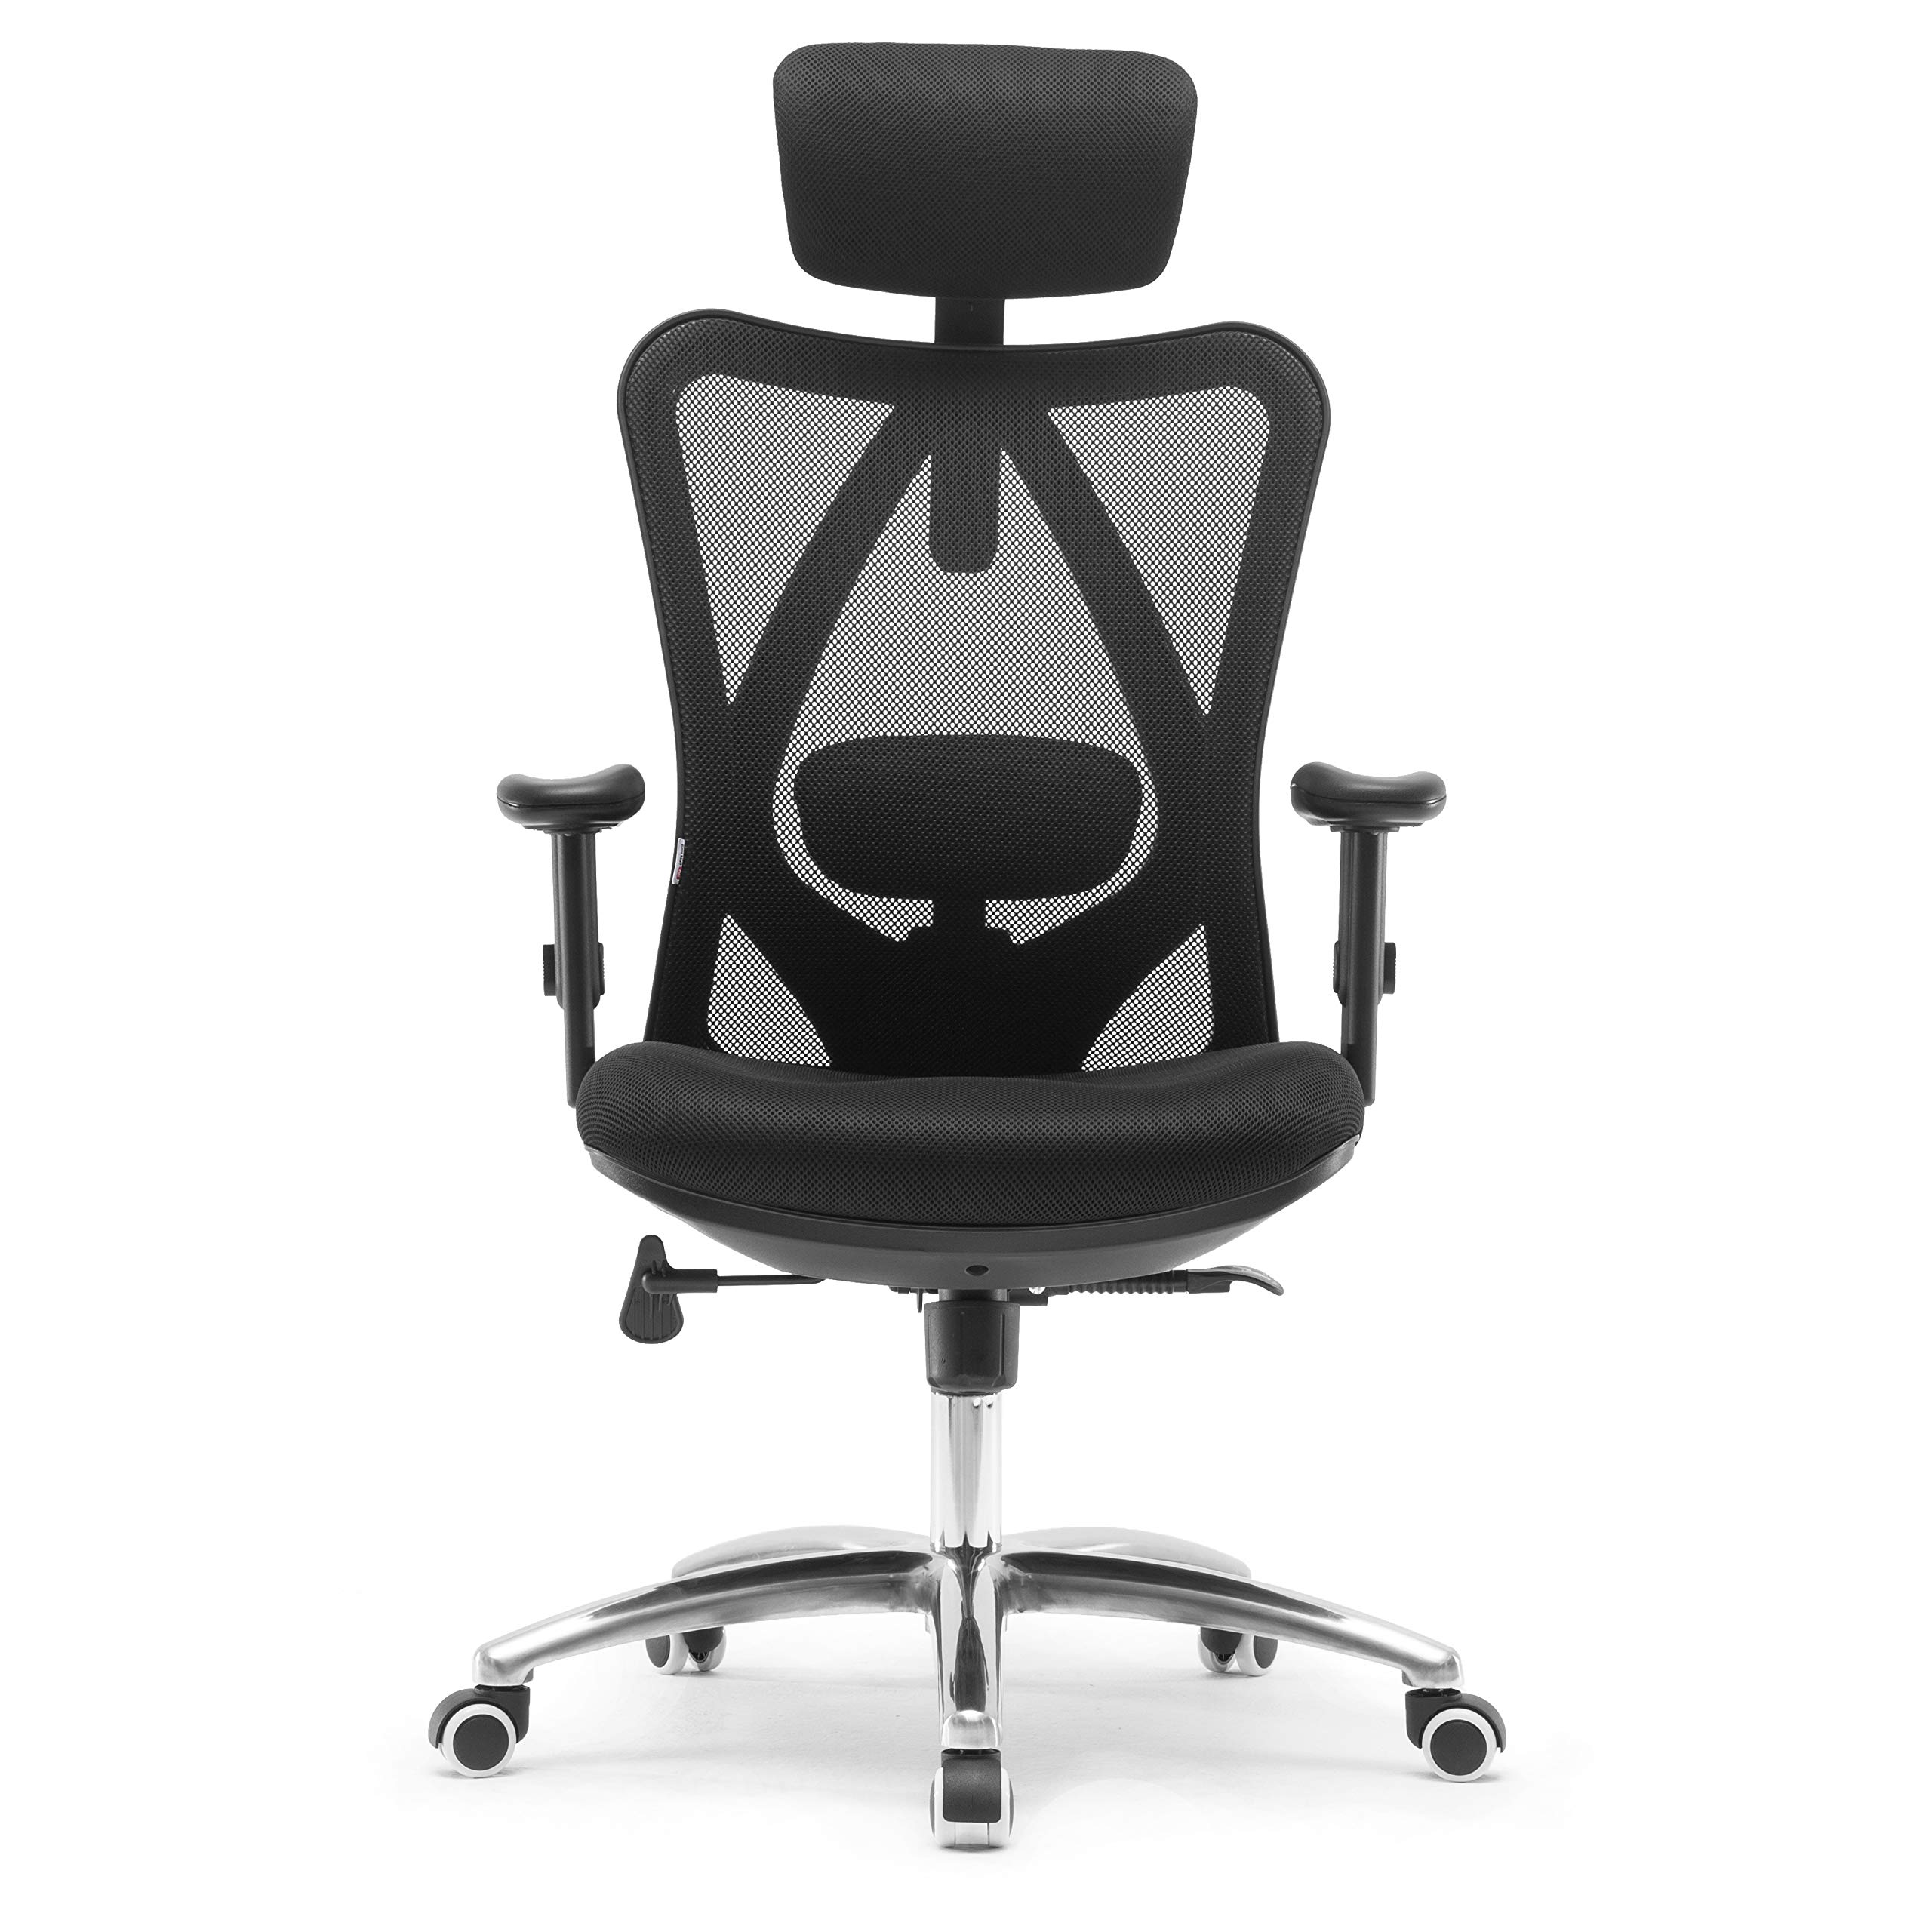 Sihoo Ergonomics Office Chair Computer Chair Desk Chair, Adjustable Headrests Chair Backrest and Armrest's Mesh Chair (Black) by SIHOO